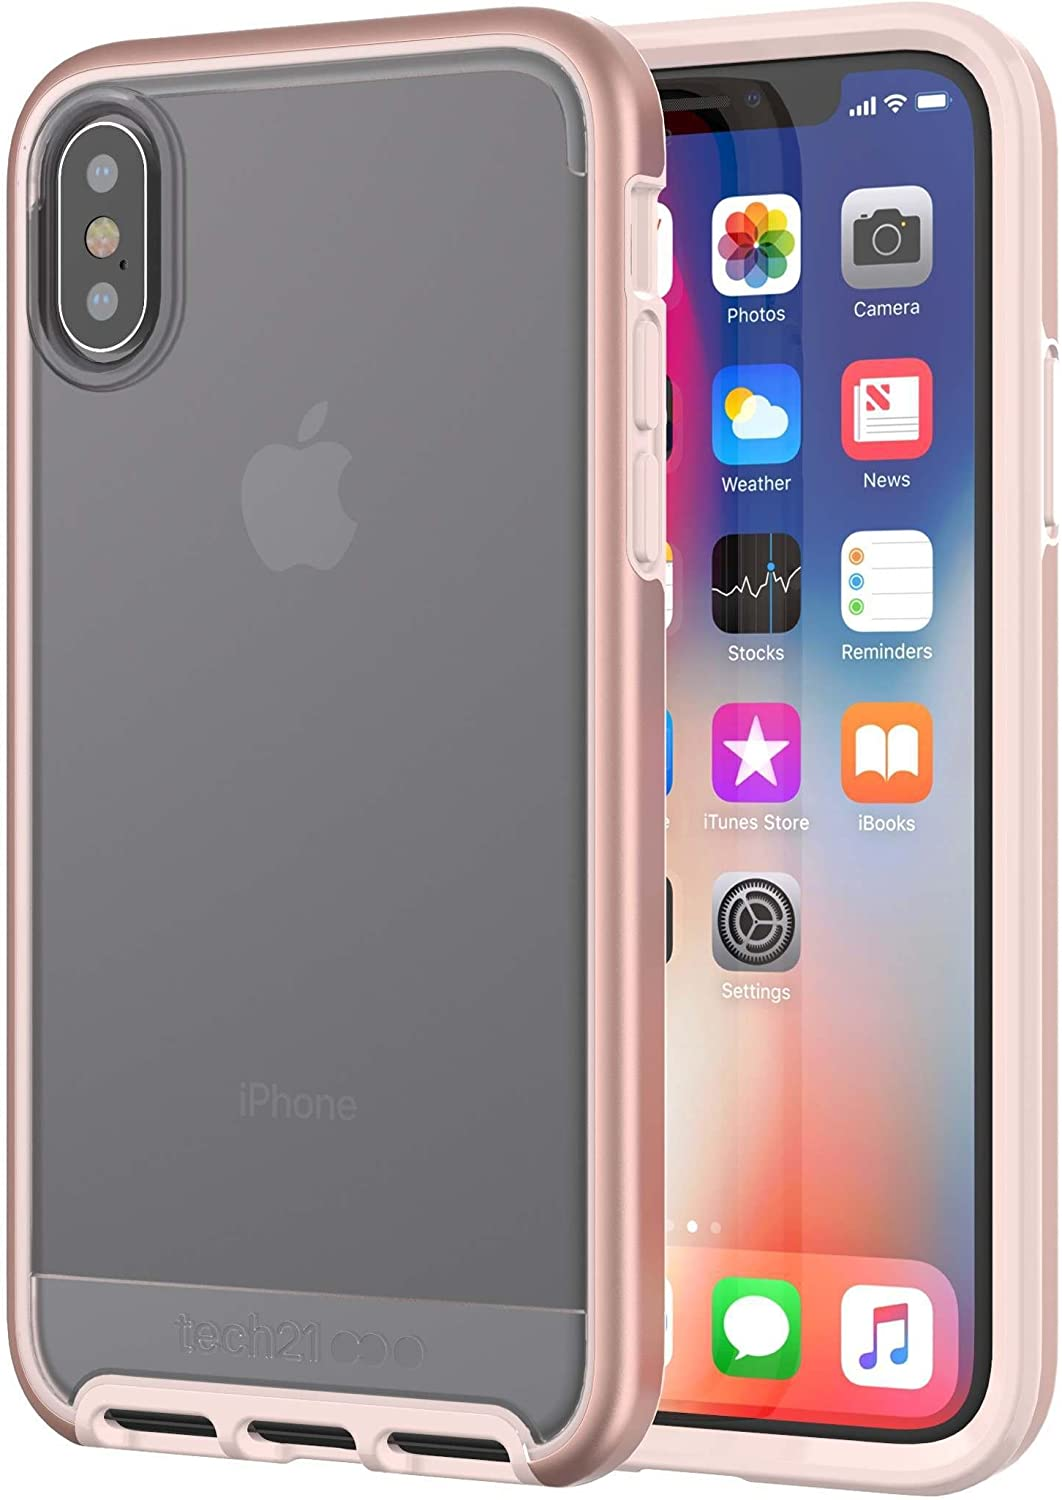 tech21 Evo Elite Phone Case for iPhone X and XS - Rose Gold